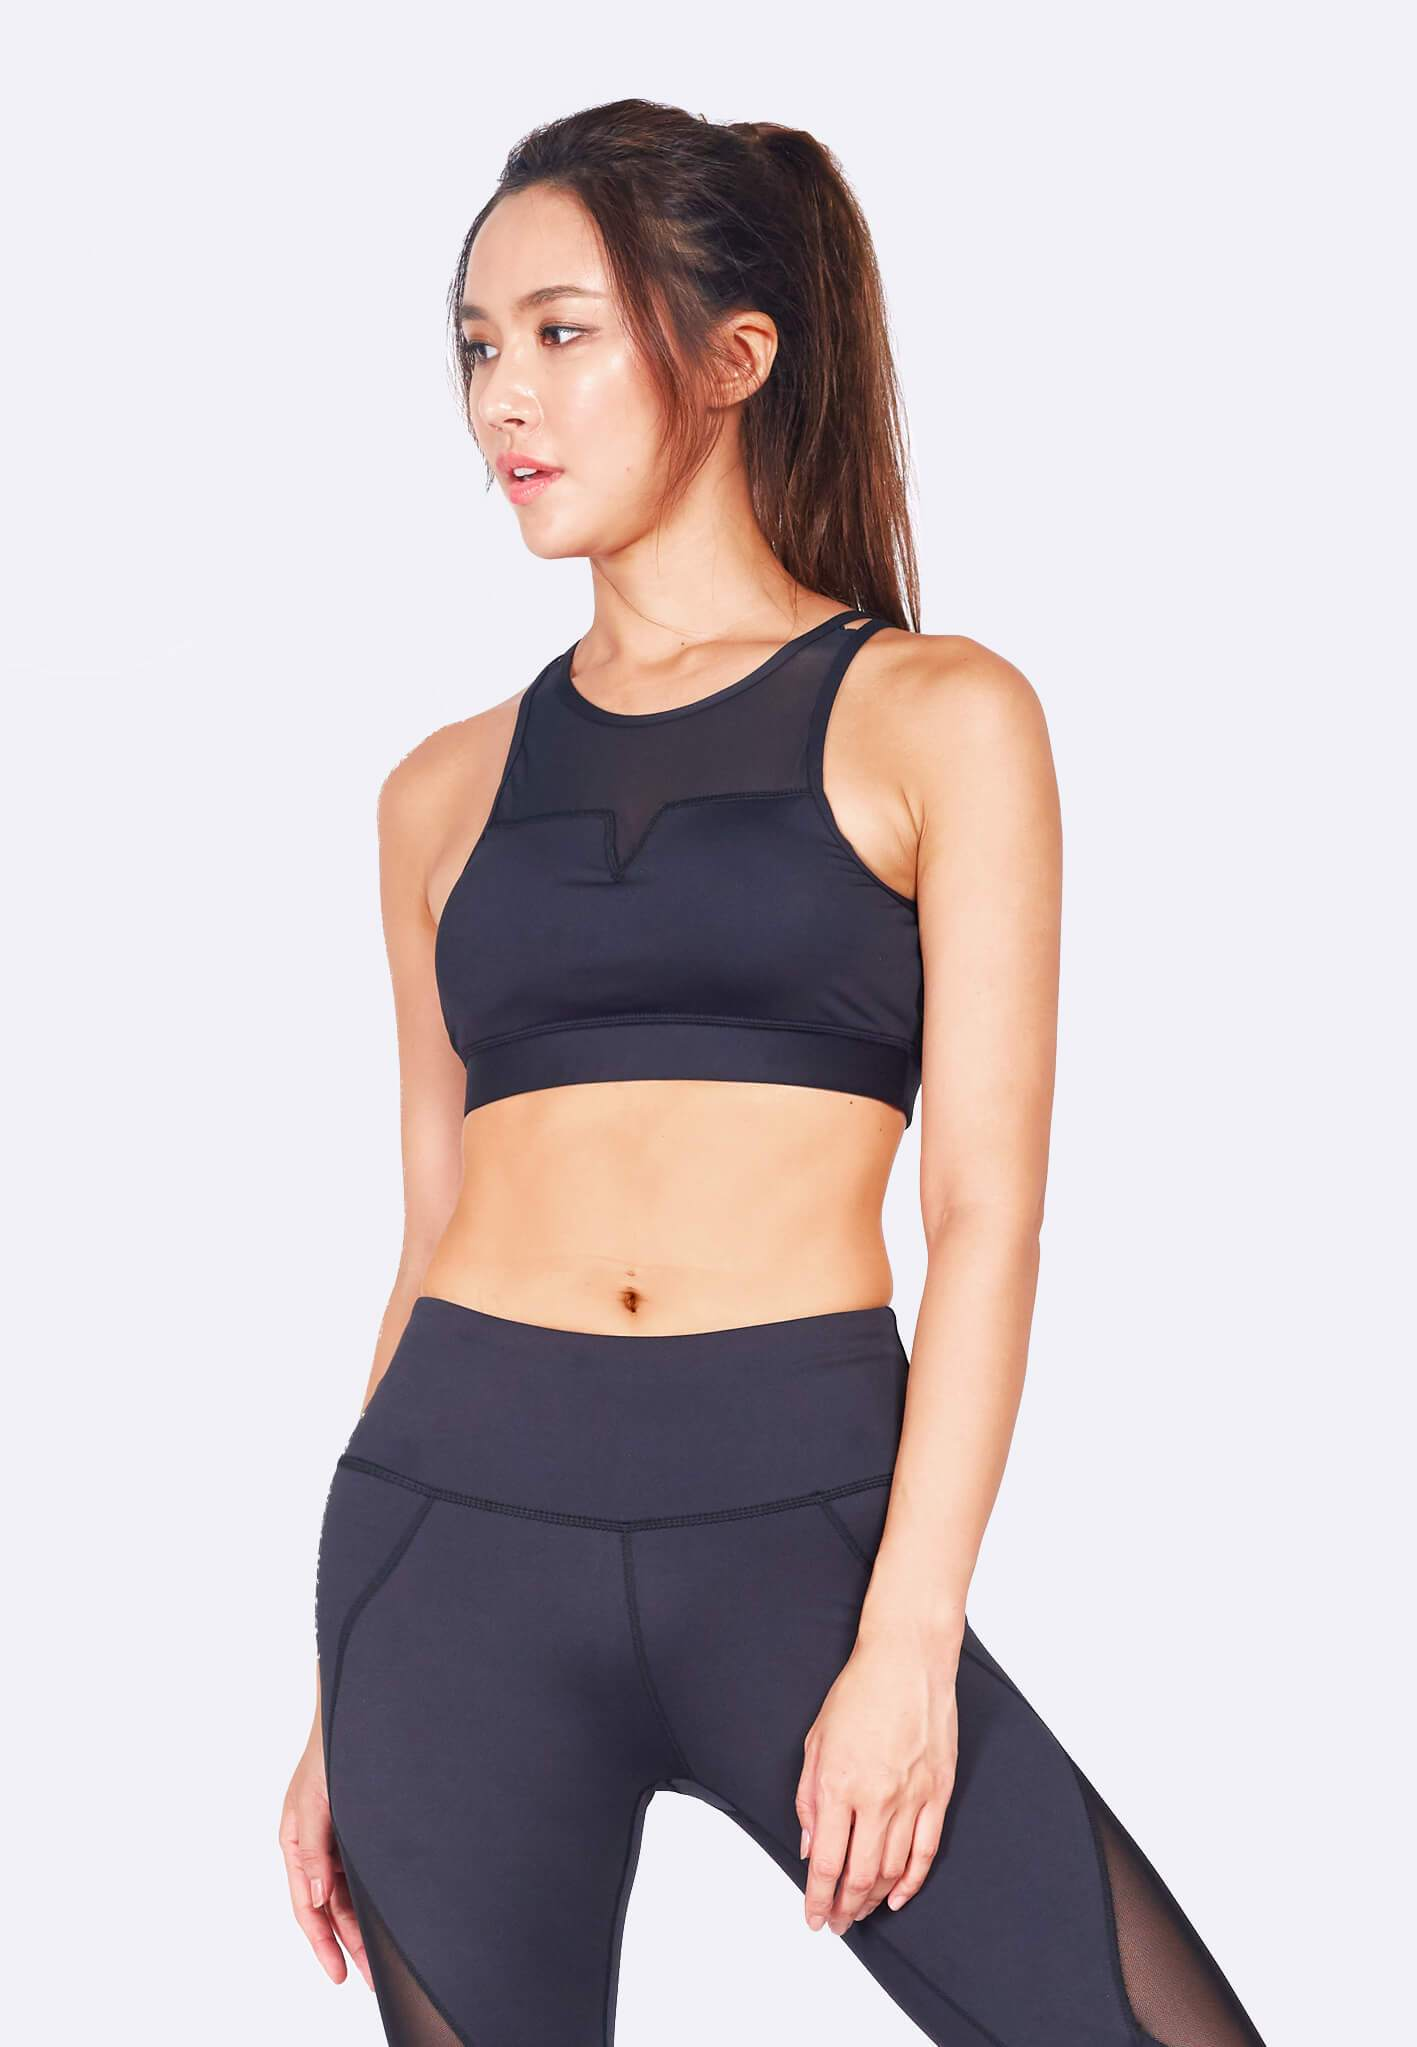 Revival Crossback Sports Bra in Black (S - 3XL) - FUNFIT